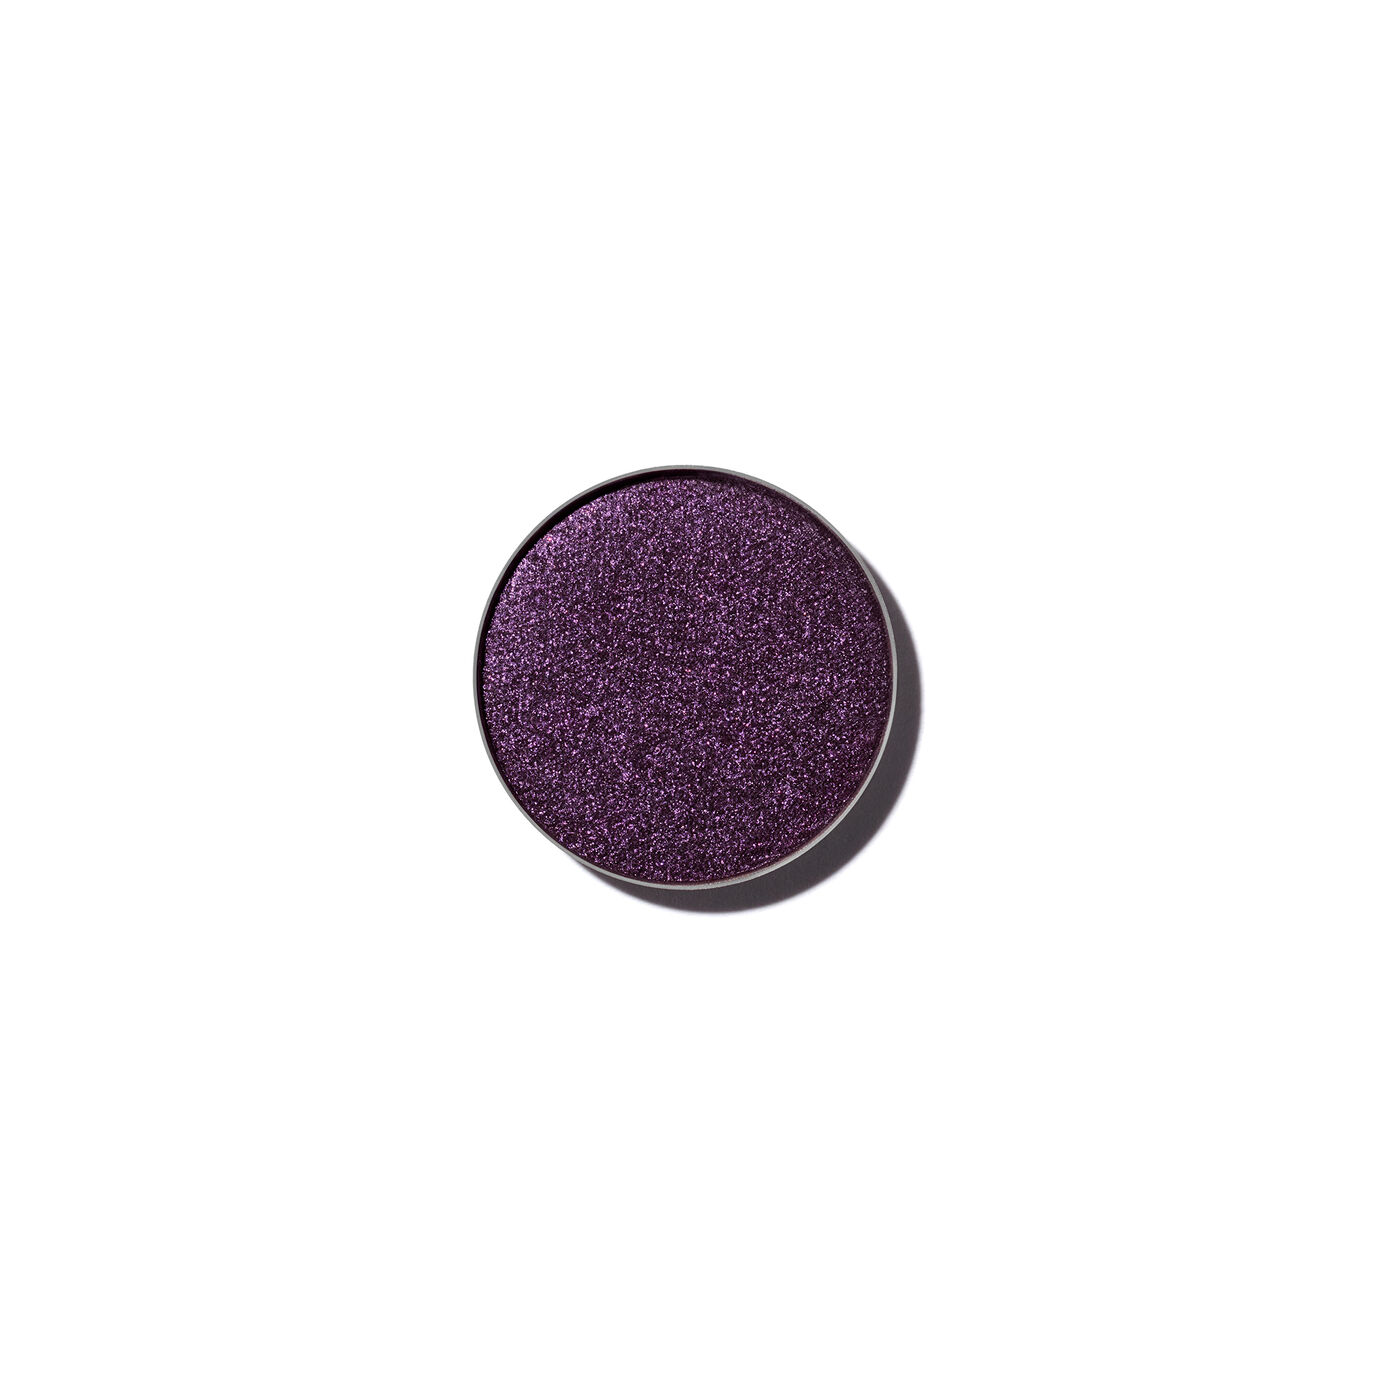 Eyeshadow Singles - Enchanted